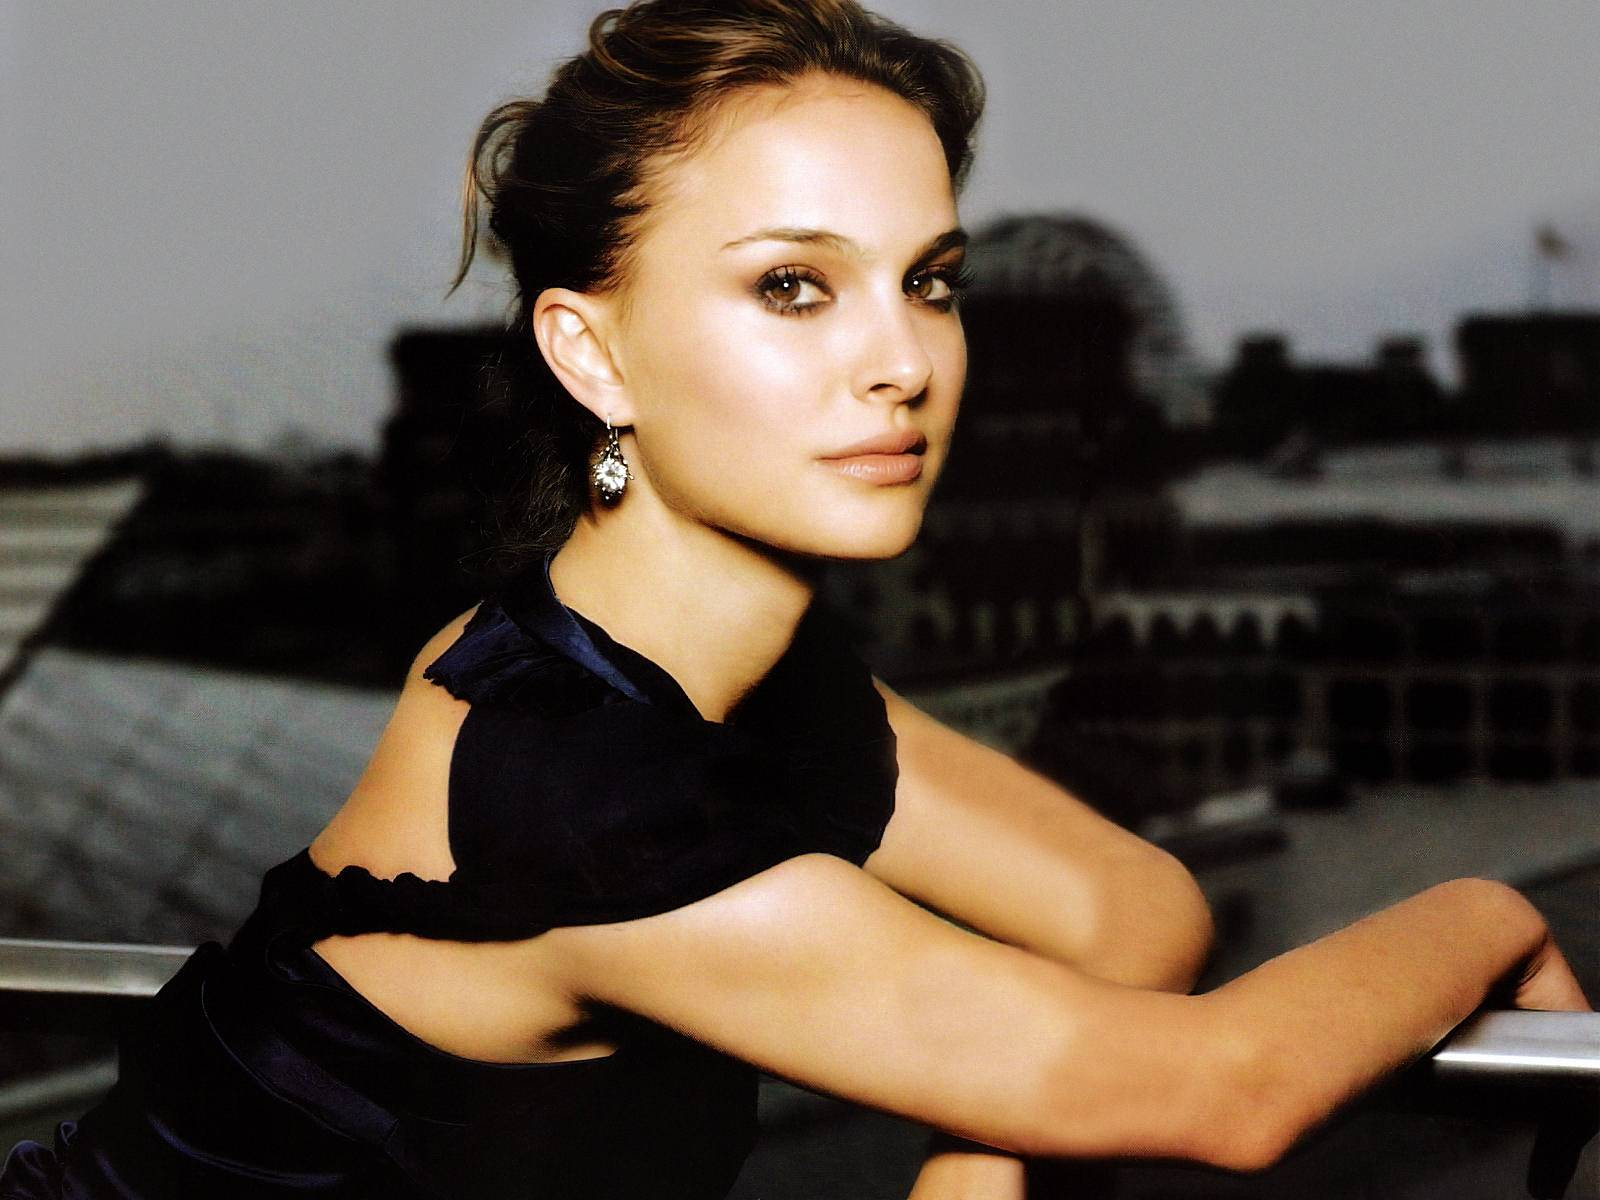 Natalie Portman 20 5146 Images HD Wallpapers| Wallpapers & Backgrounds